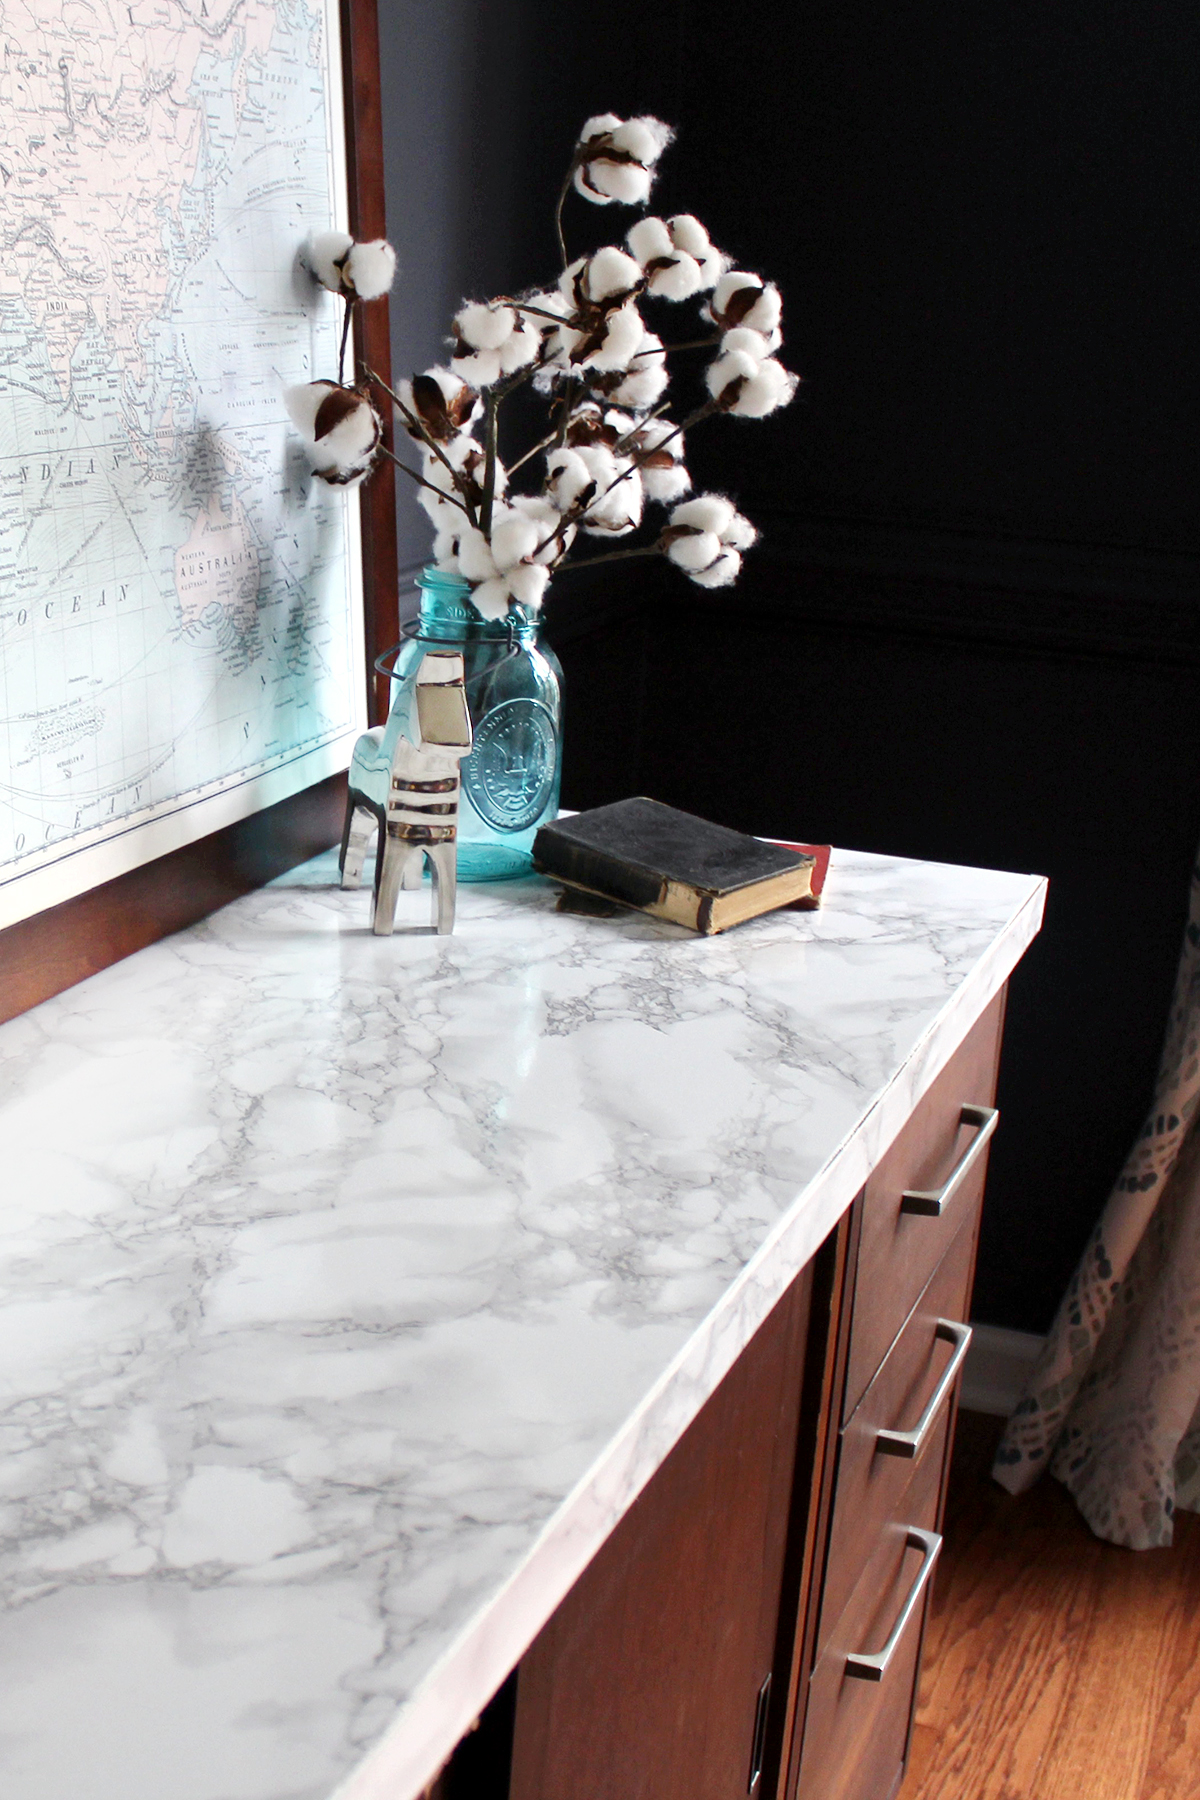 how to make a faux marble tabletop for under $10 #DIY #FauxMarble #Upcycle